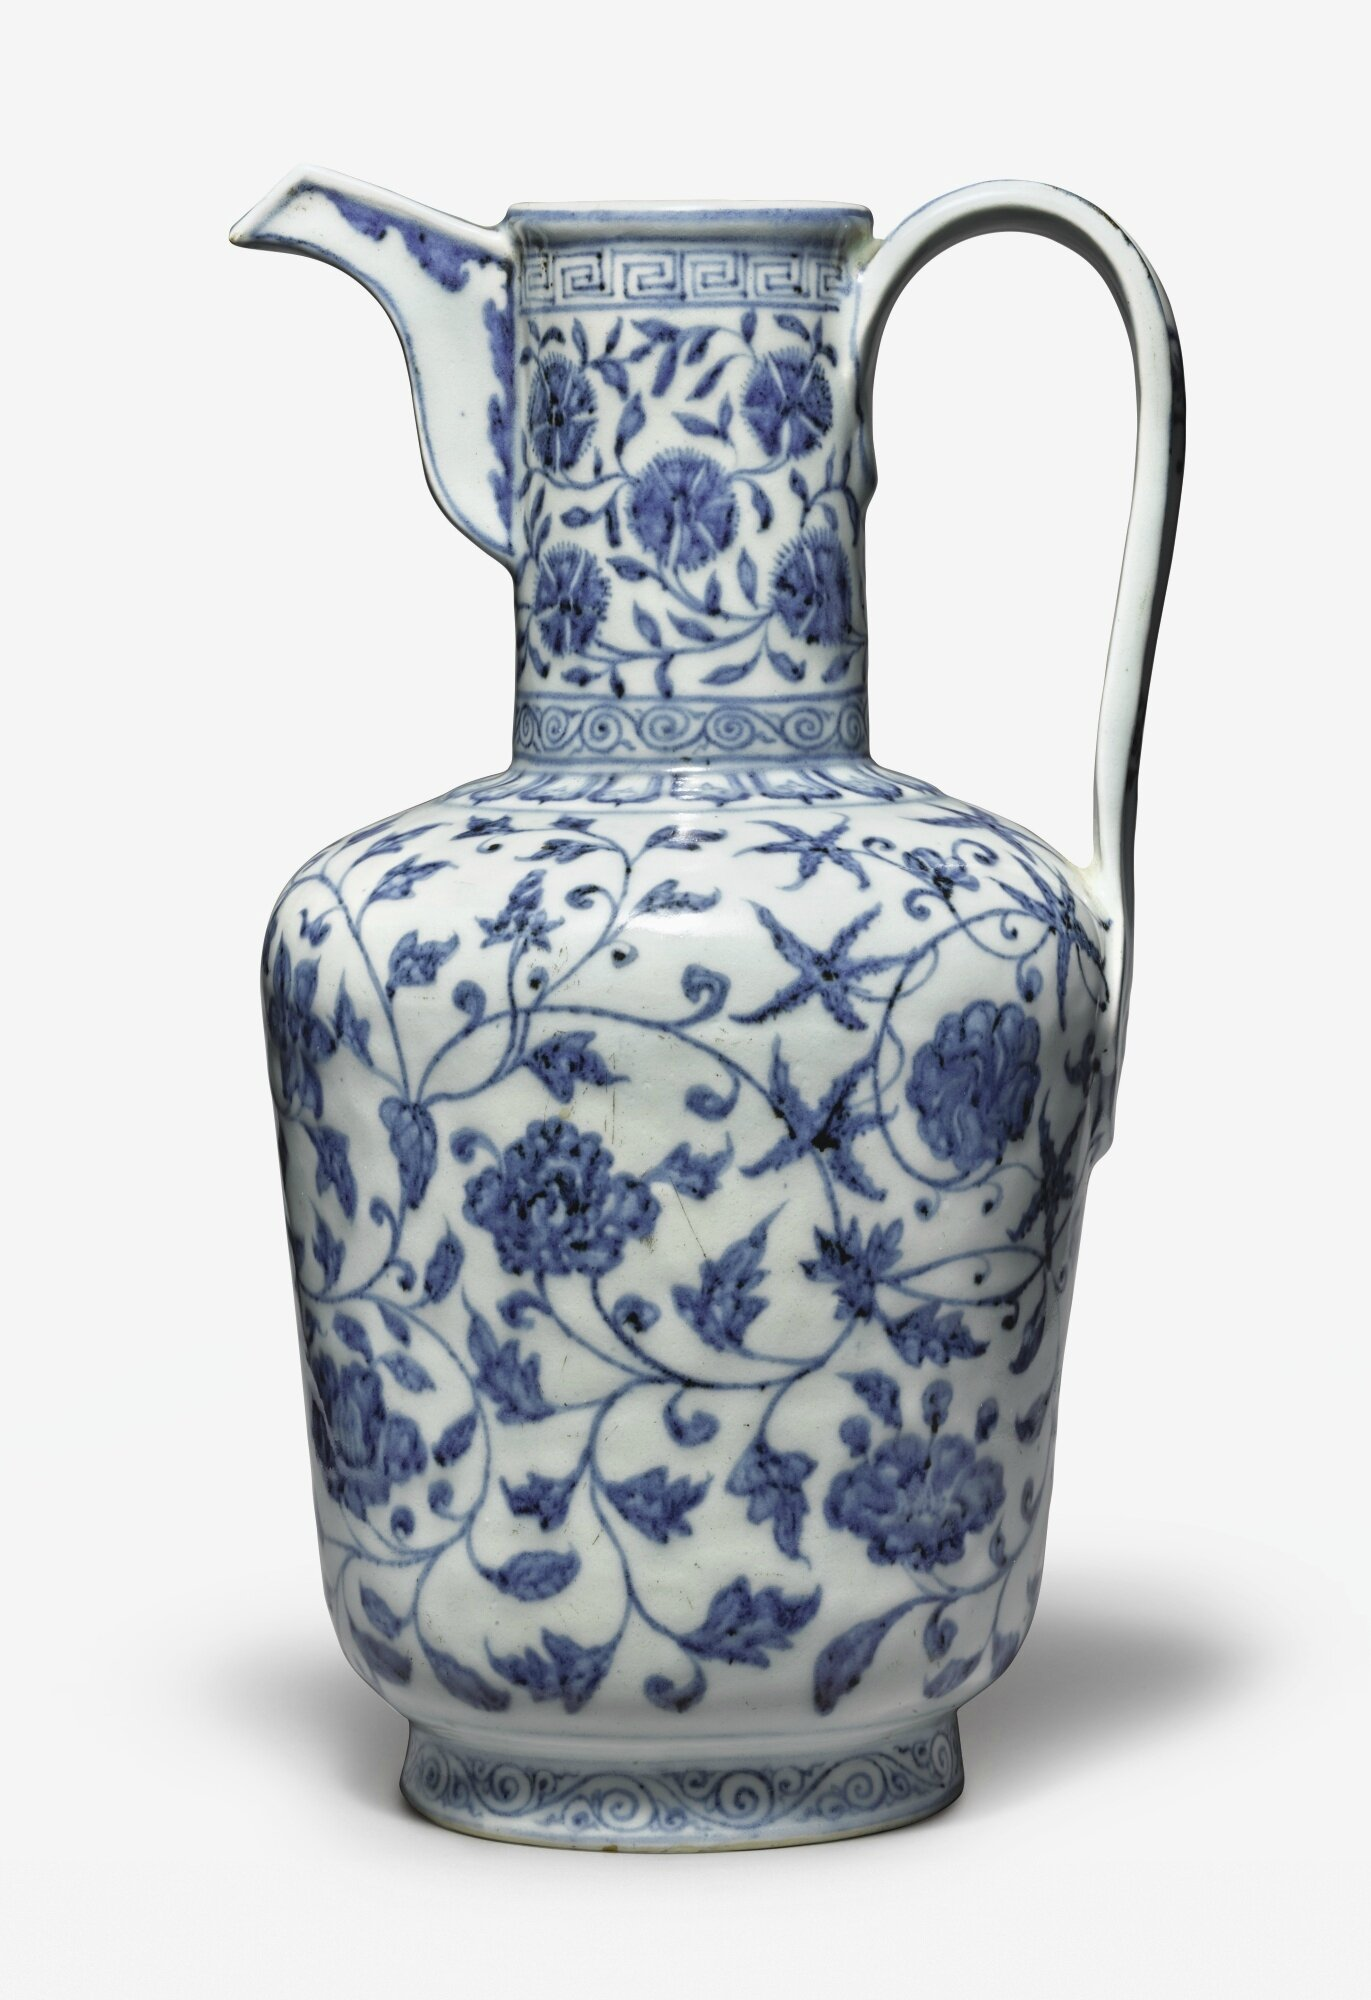 An exceptionally rare and important blue and white ewer xuande an exceptionally rare and important blue and white ewer xuande mark and period 1426 1435 reviewsmspy